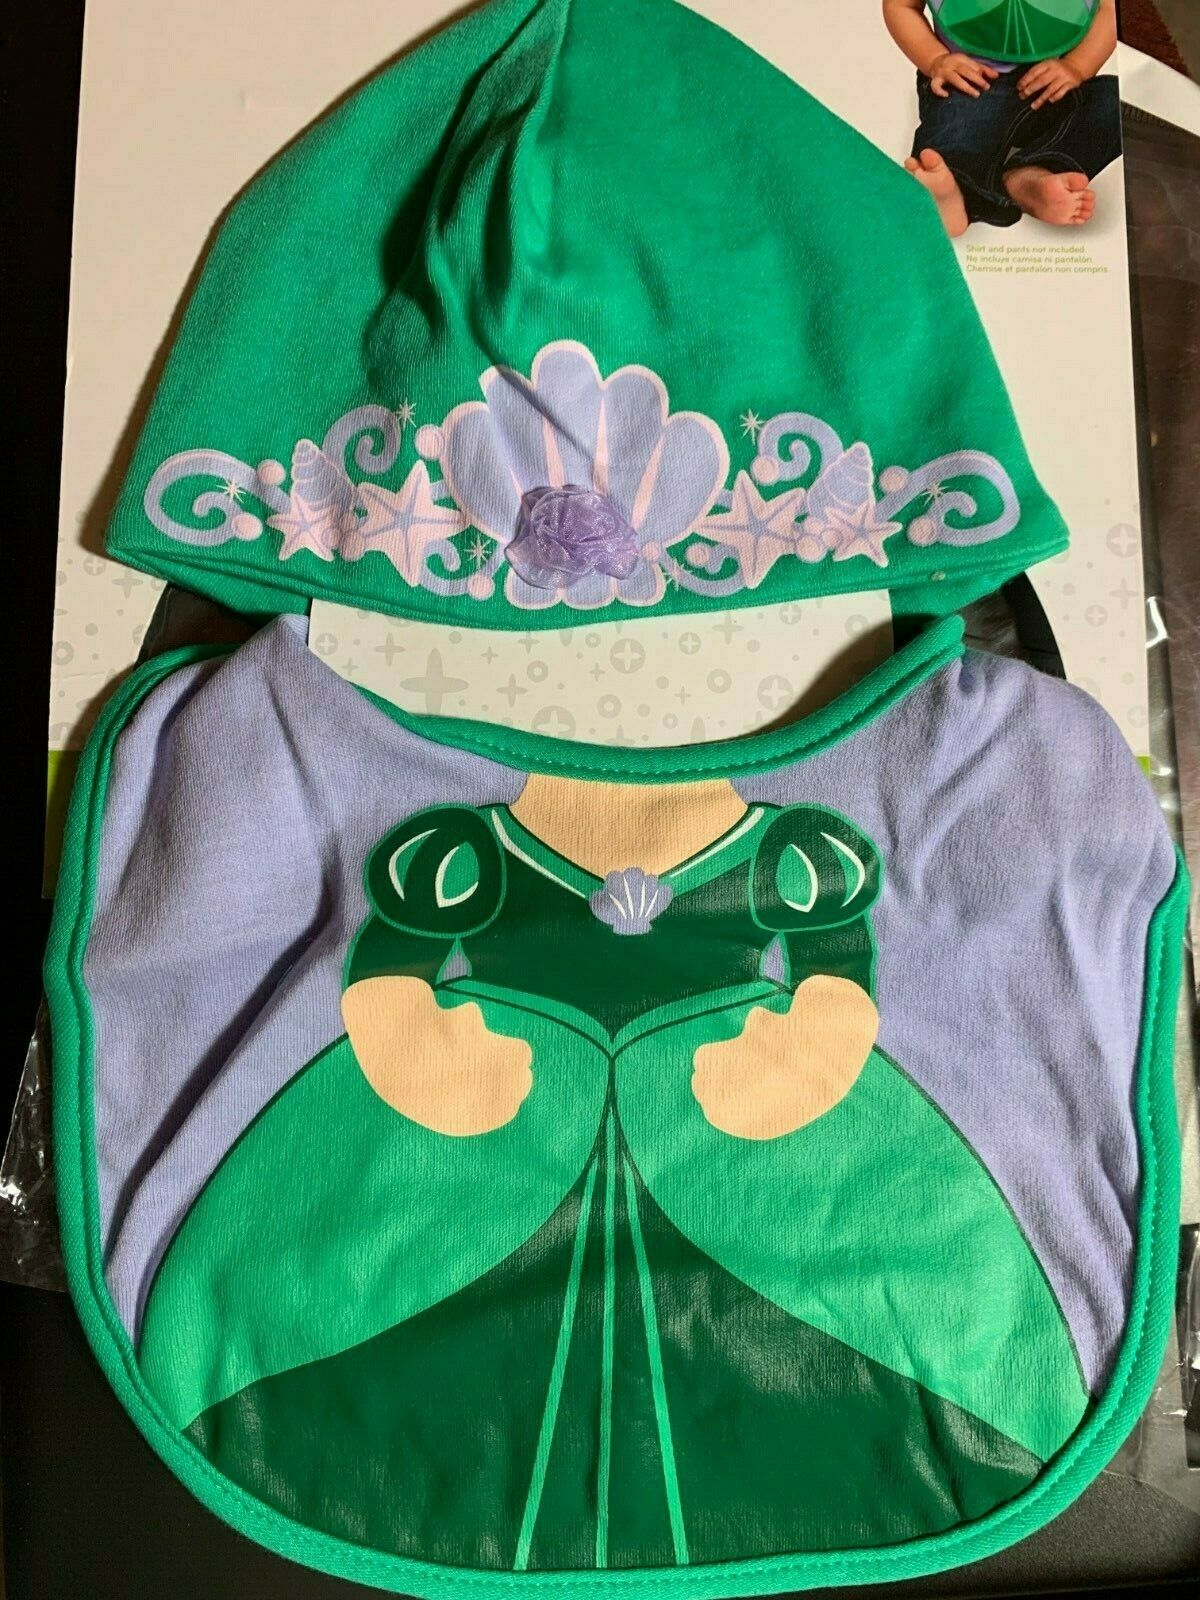 DISNEY BABY ARIEL BIB AND HAT SET SIZE 0-12 MONTHS BABY PRIN